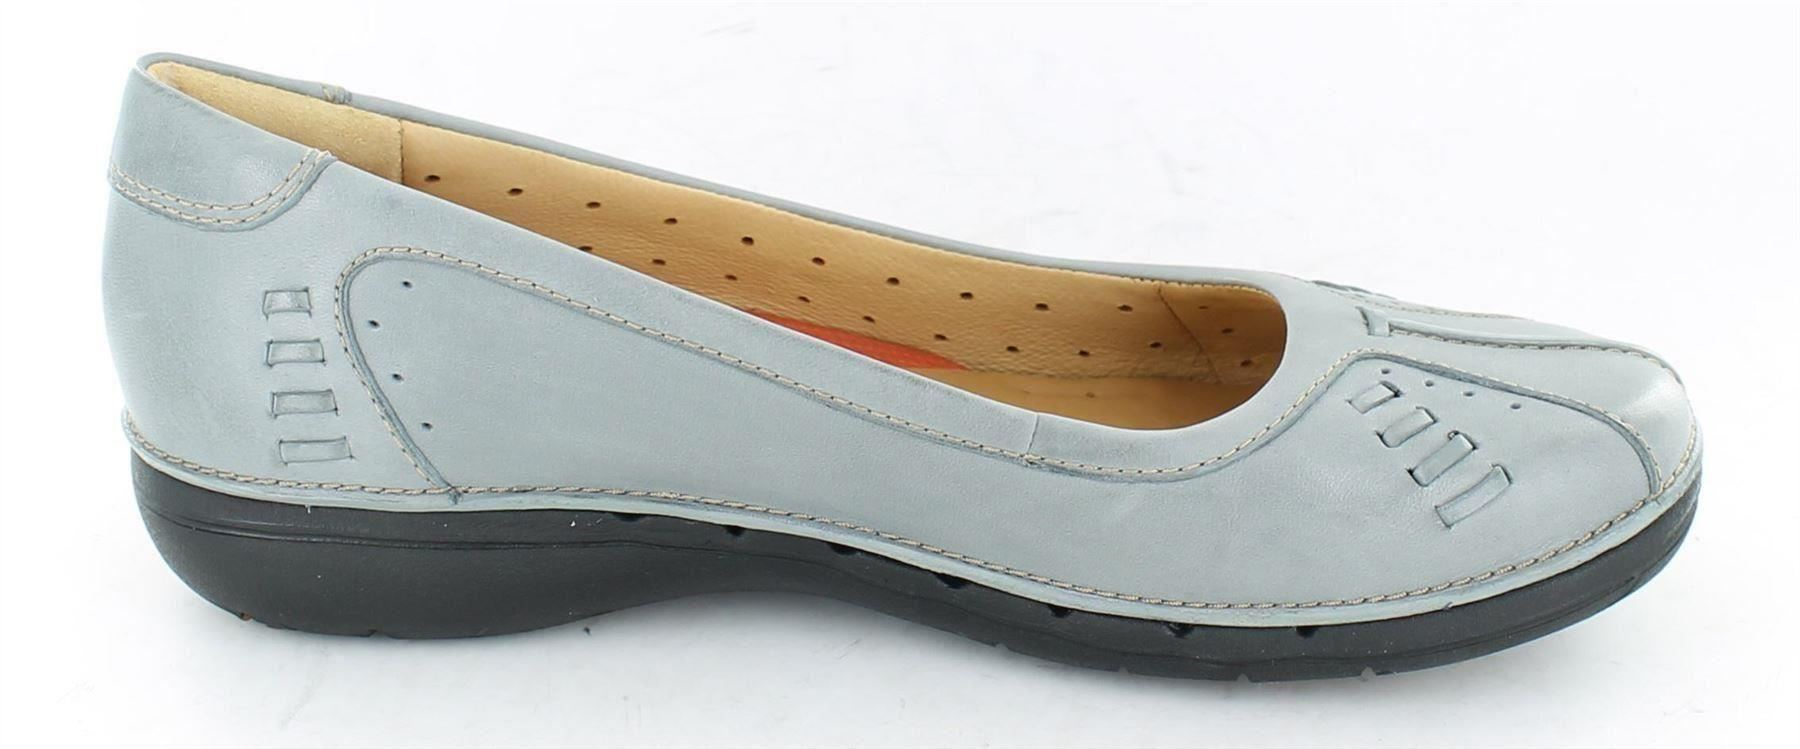 Which Stores Sell Clarks Shoes